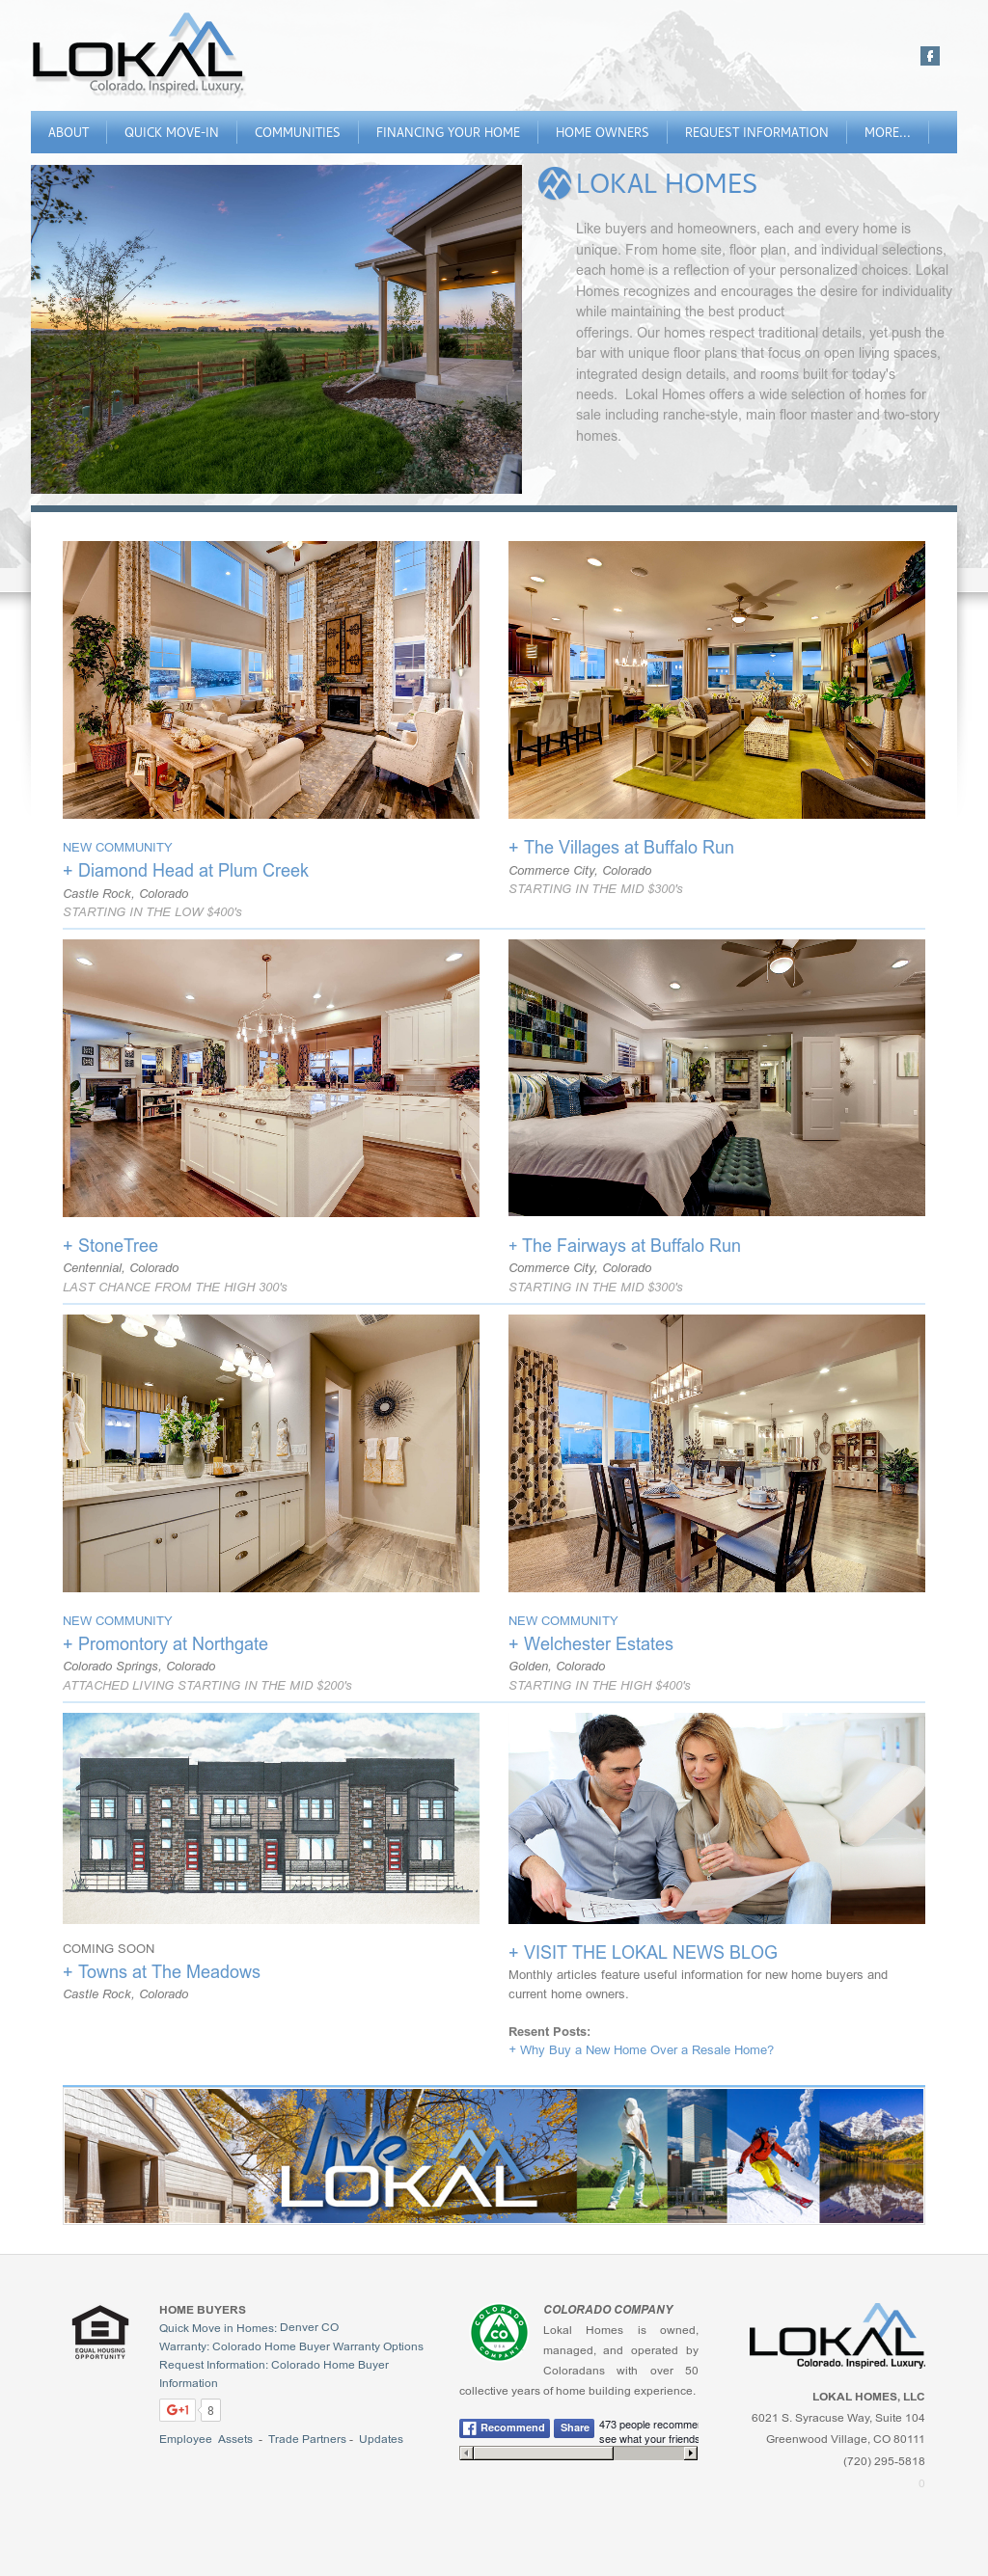 Lokal Homes Competitors, Revenue and Employees - Owler Company Profile